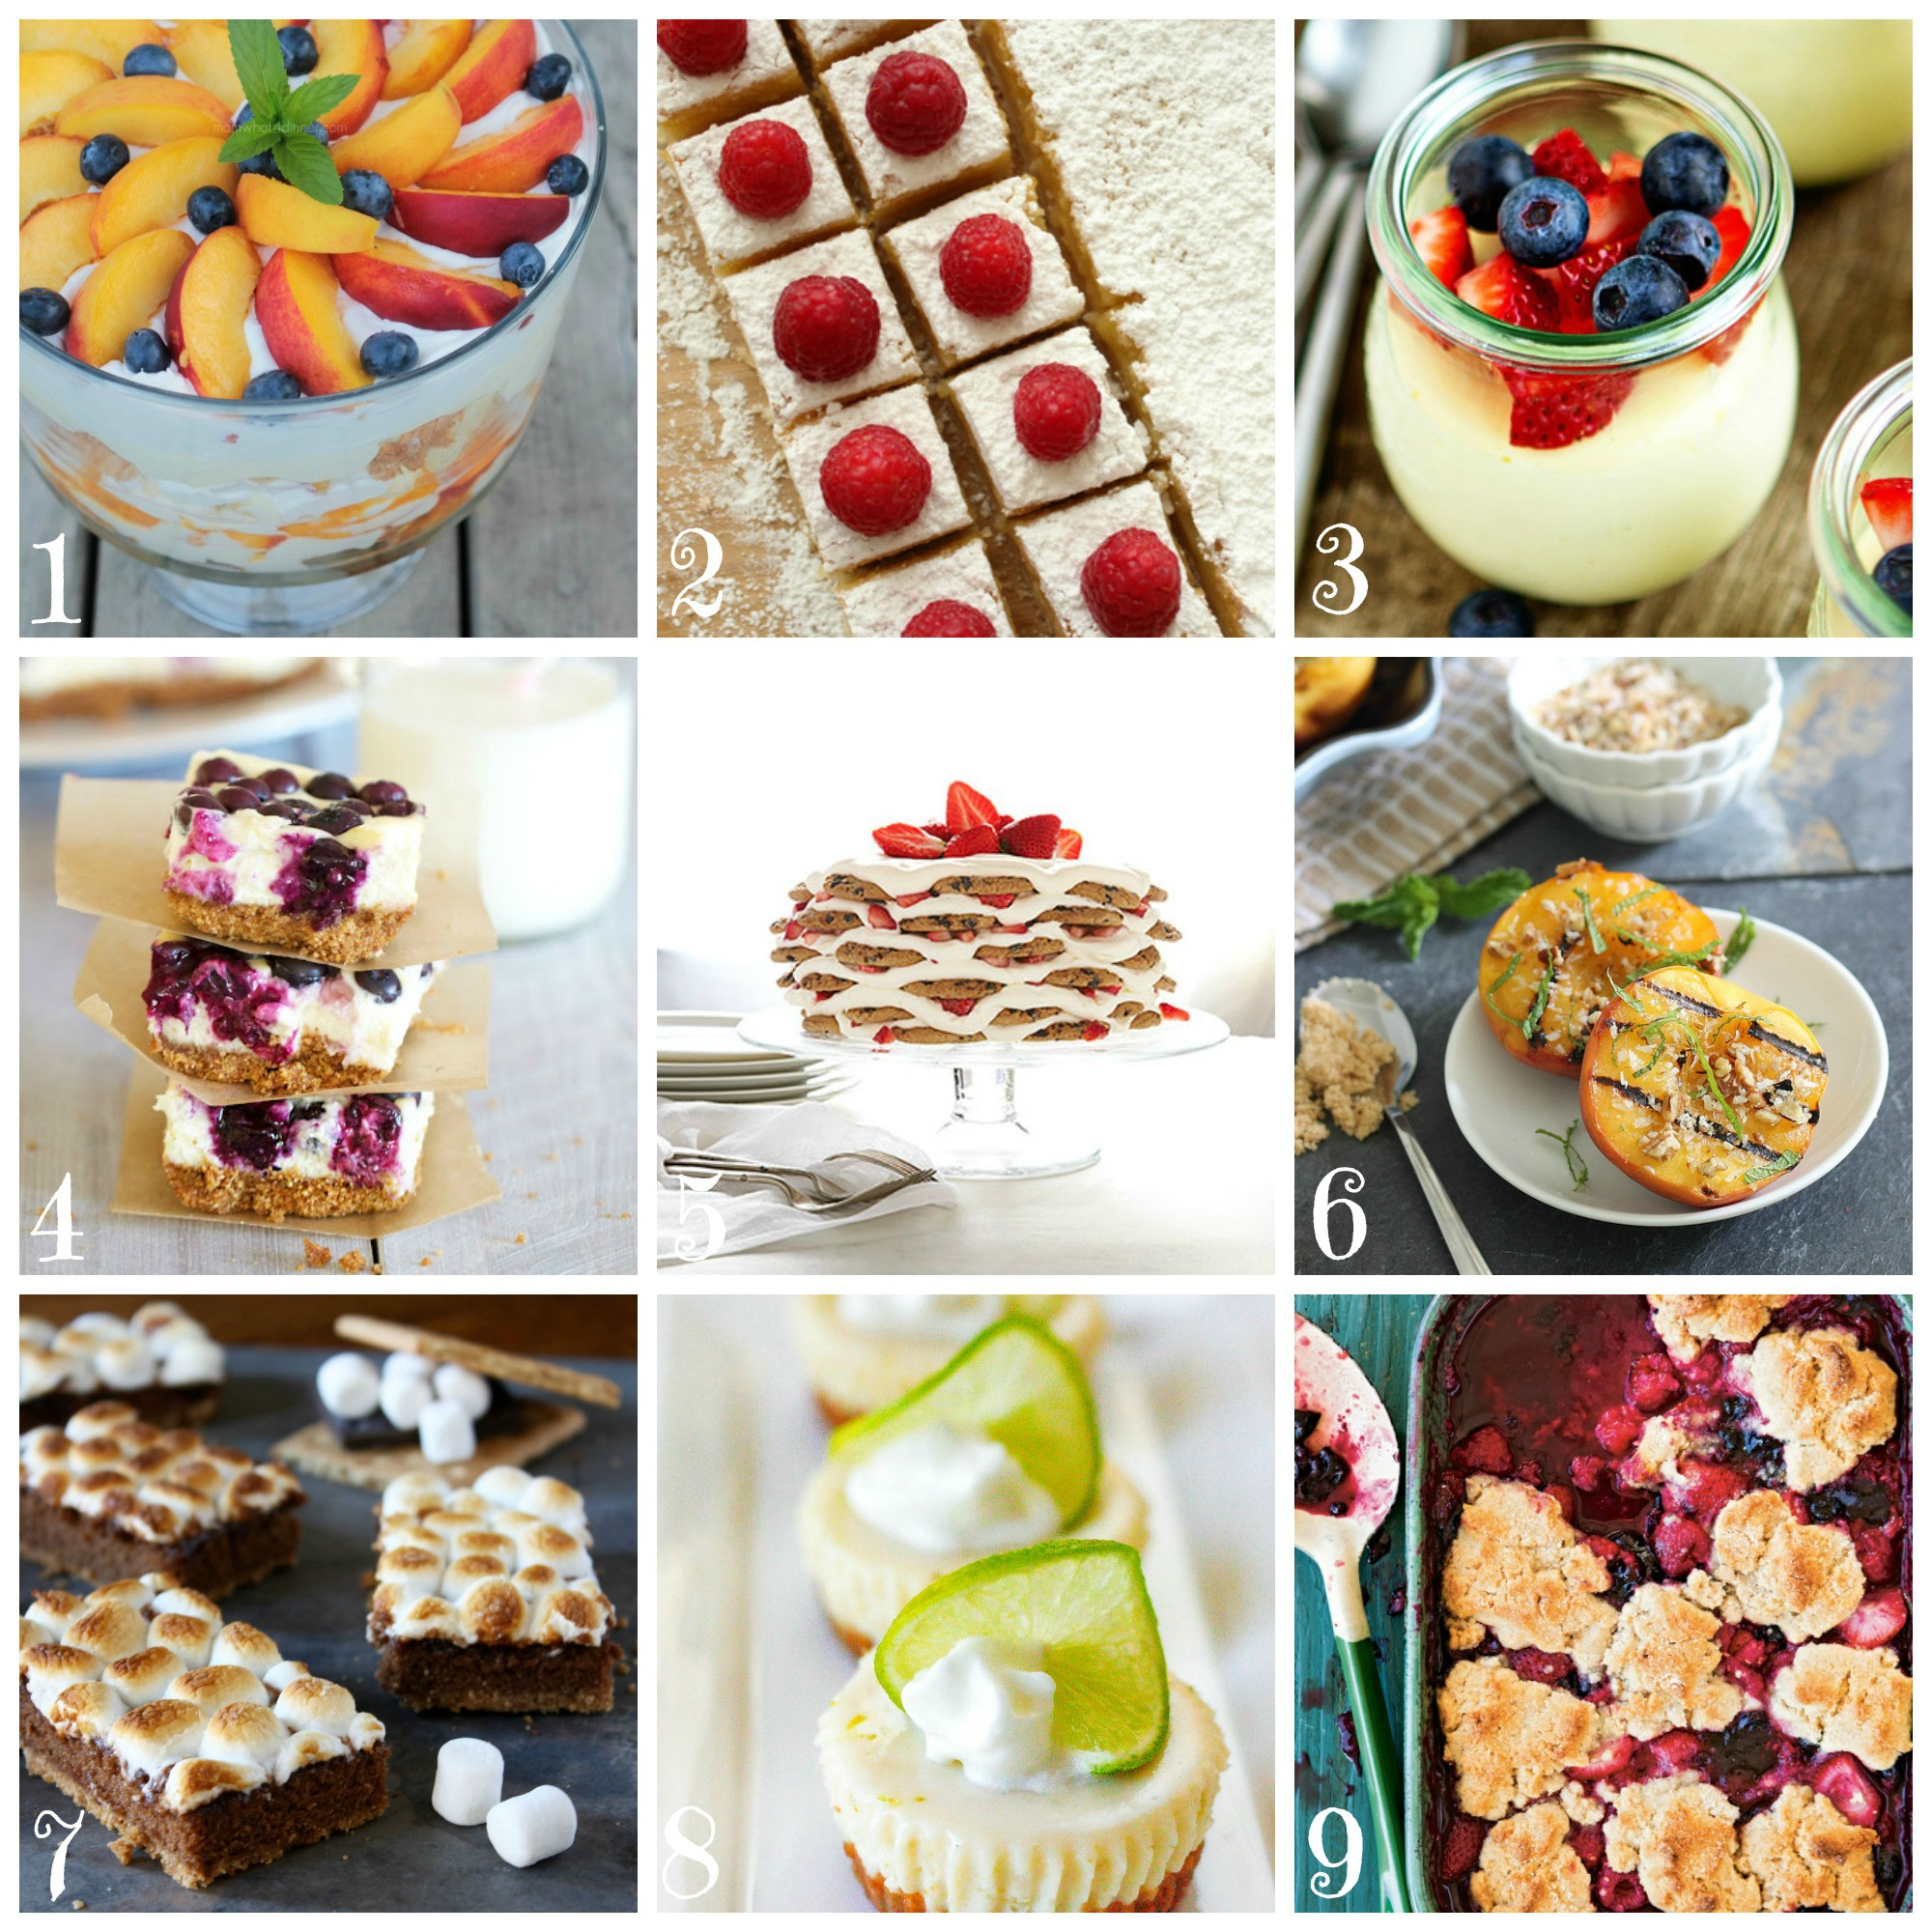 Summer Desserts Recipes  Best Summer Dessert Recipes • CakeJournal